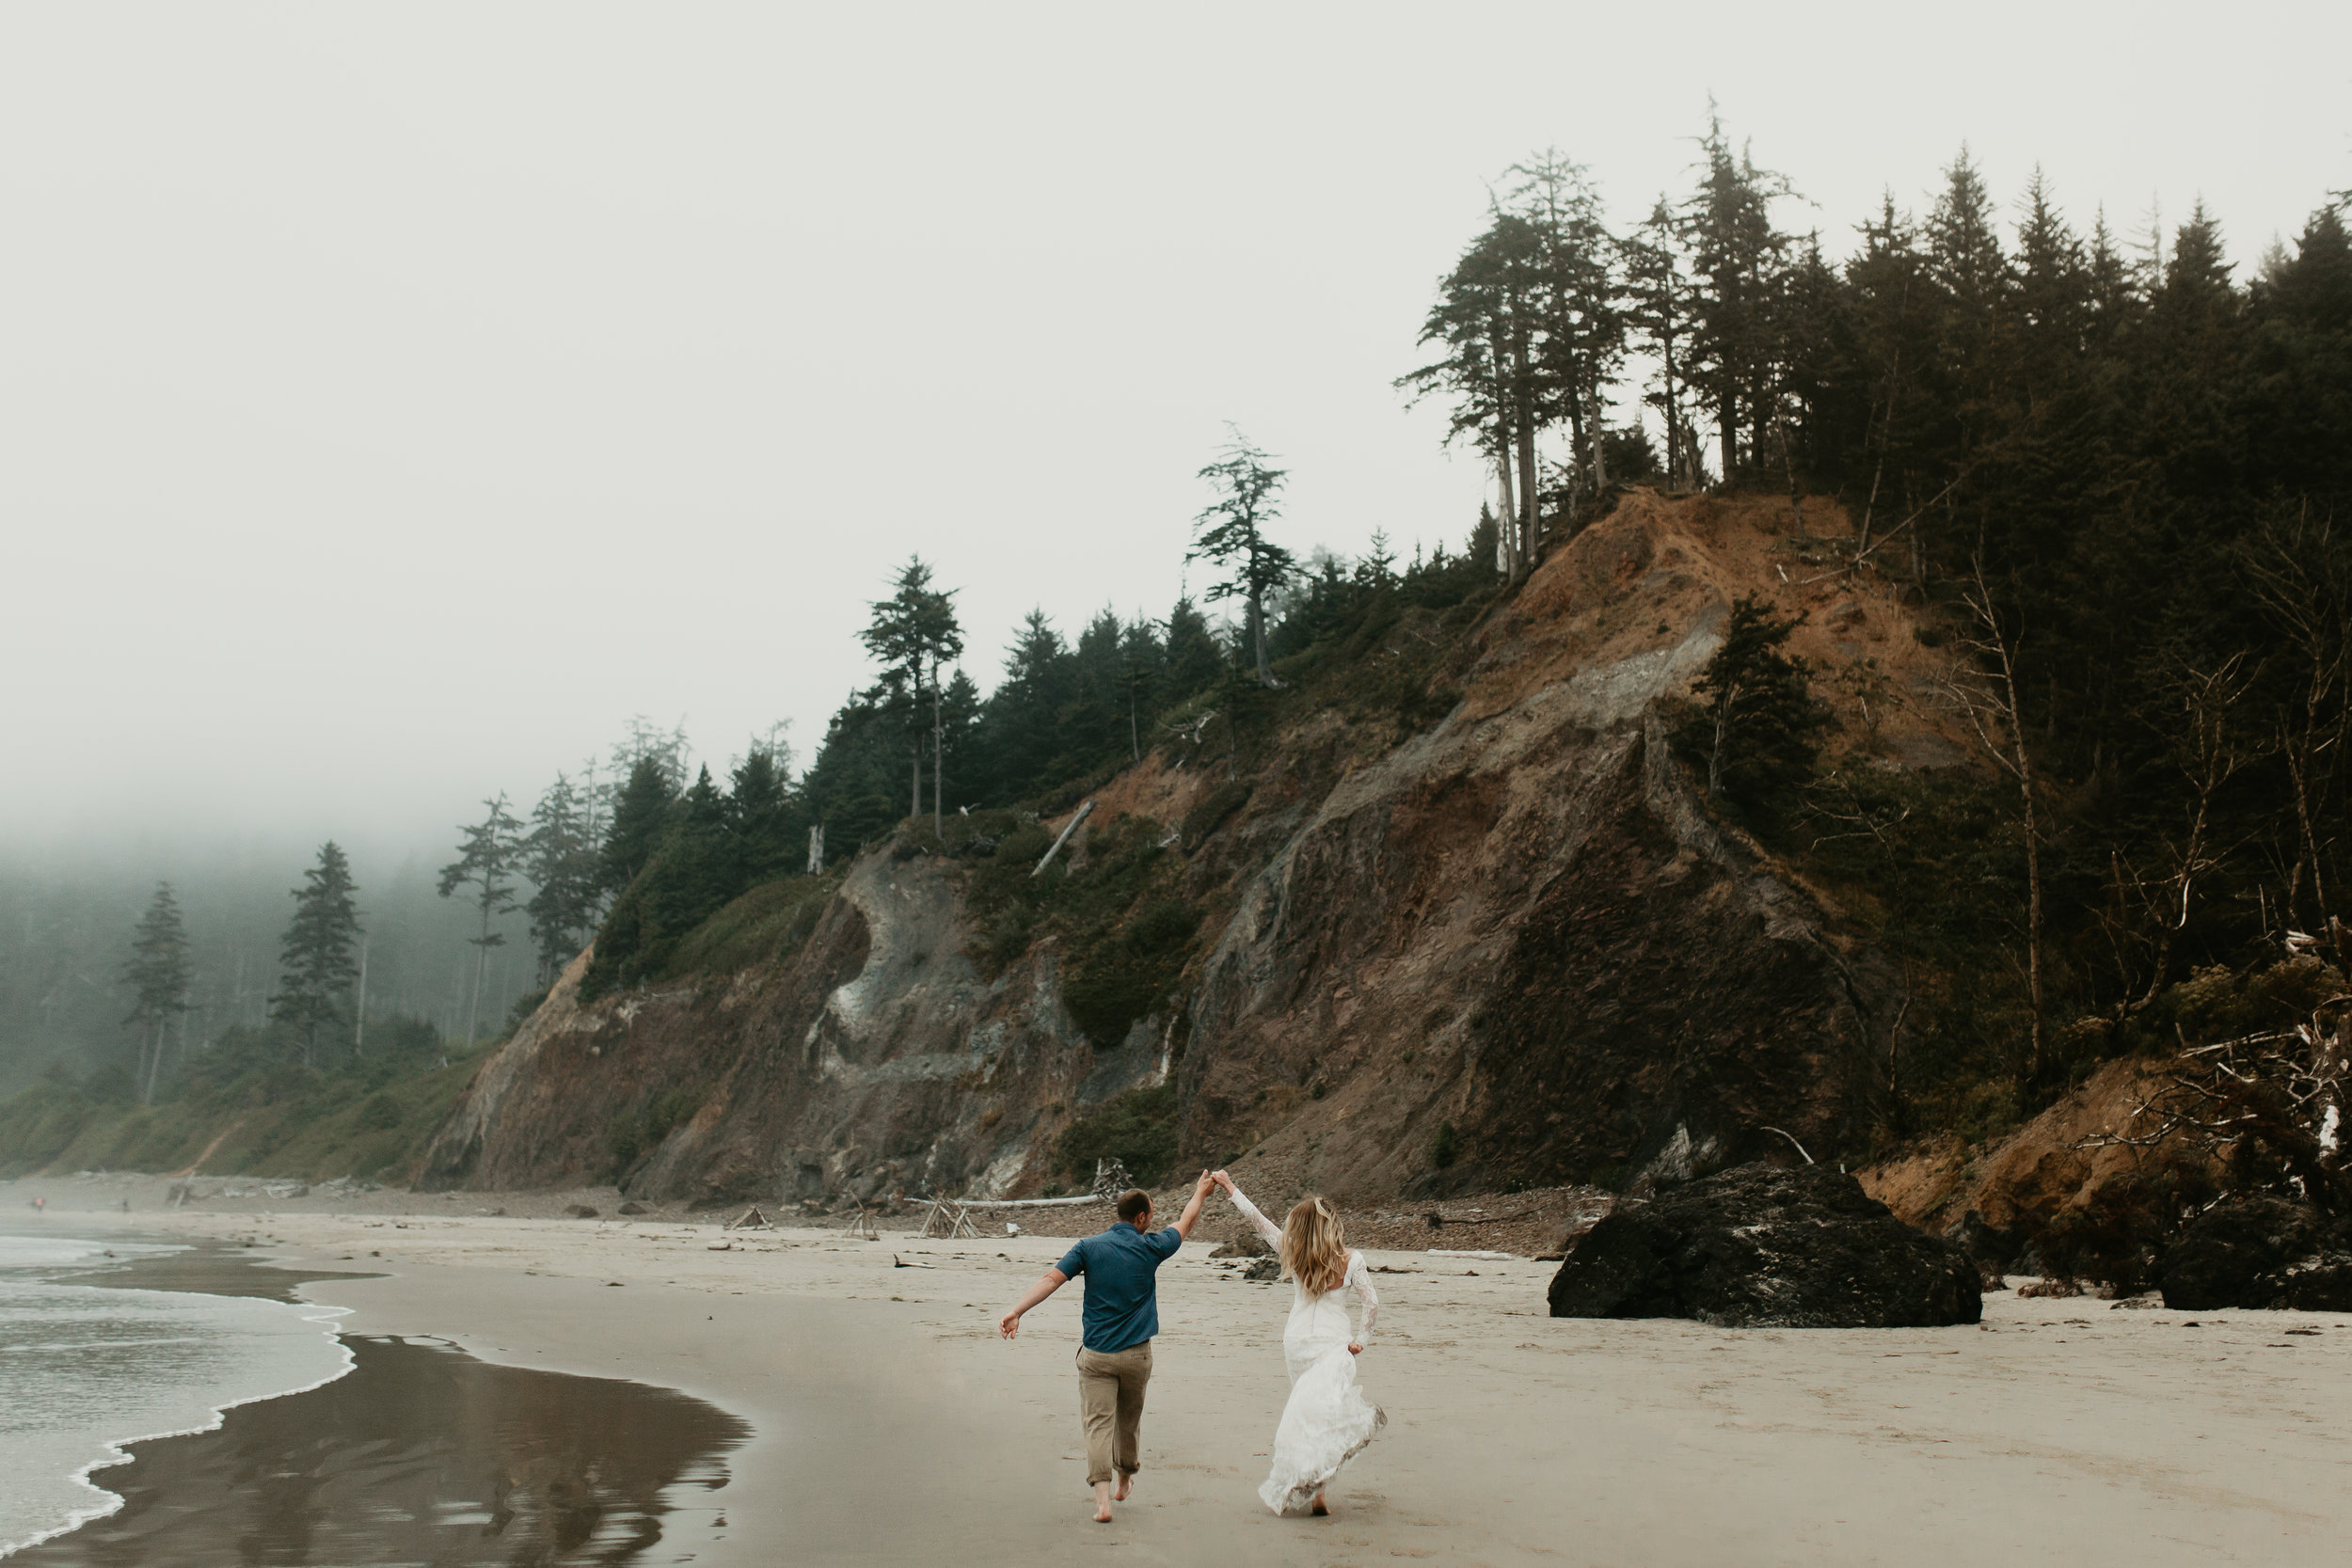 nicole-daacke-photography-oregon-coast-cannon-beach-indian-beach-ecola-state-park-adventurous-bridal-session-elopement-wedding-intimate-session-foggy-wedding-photographer-15.jpg